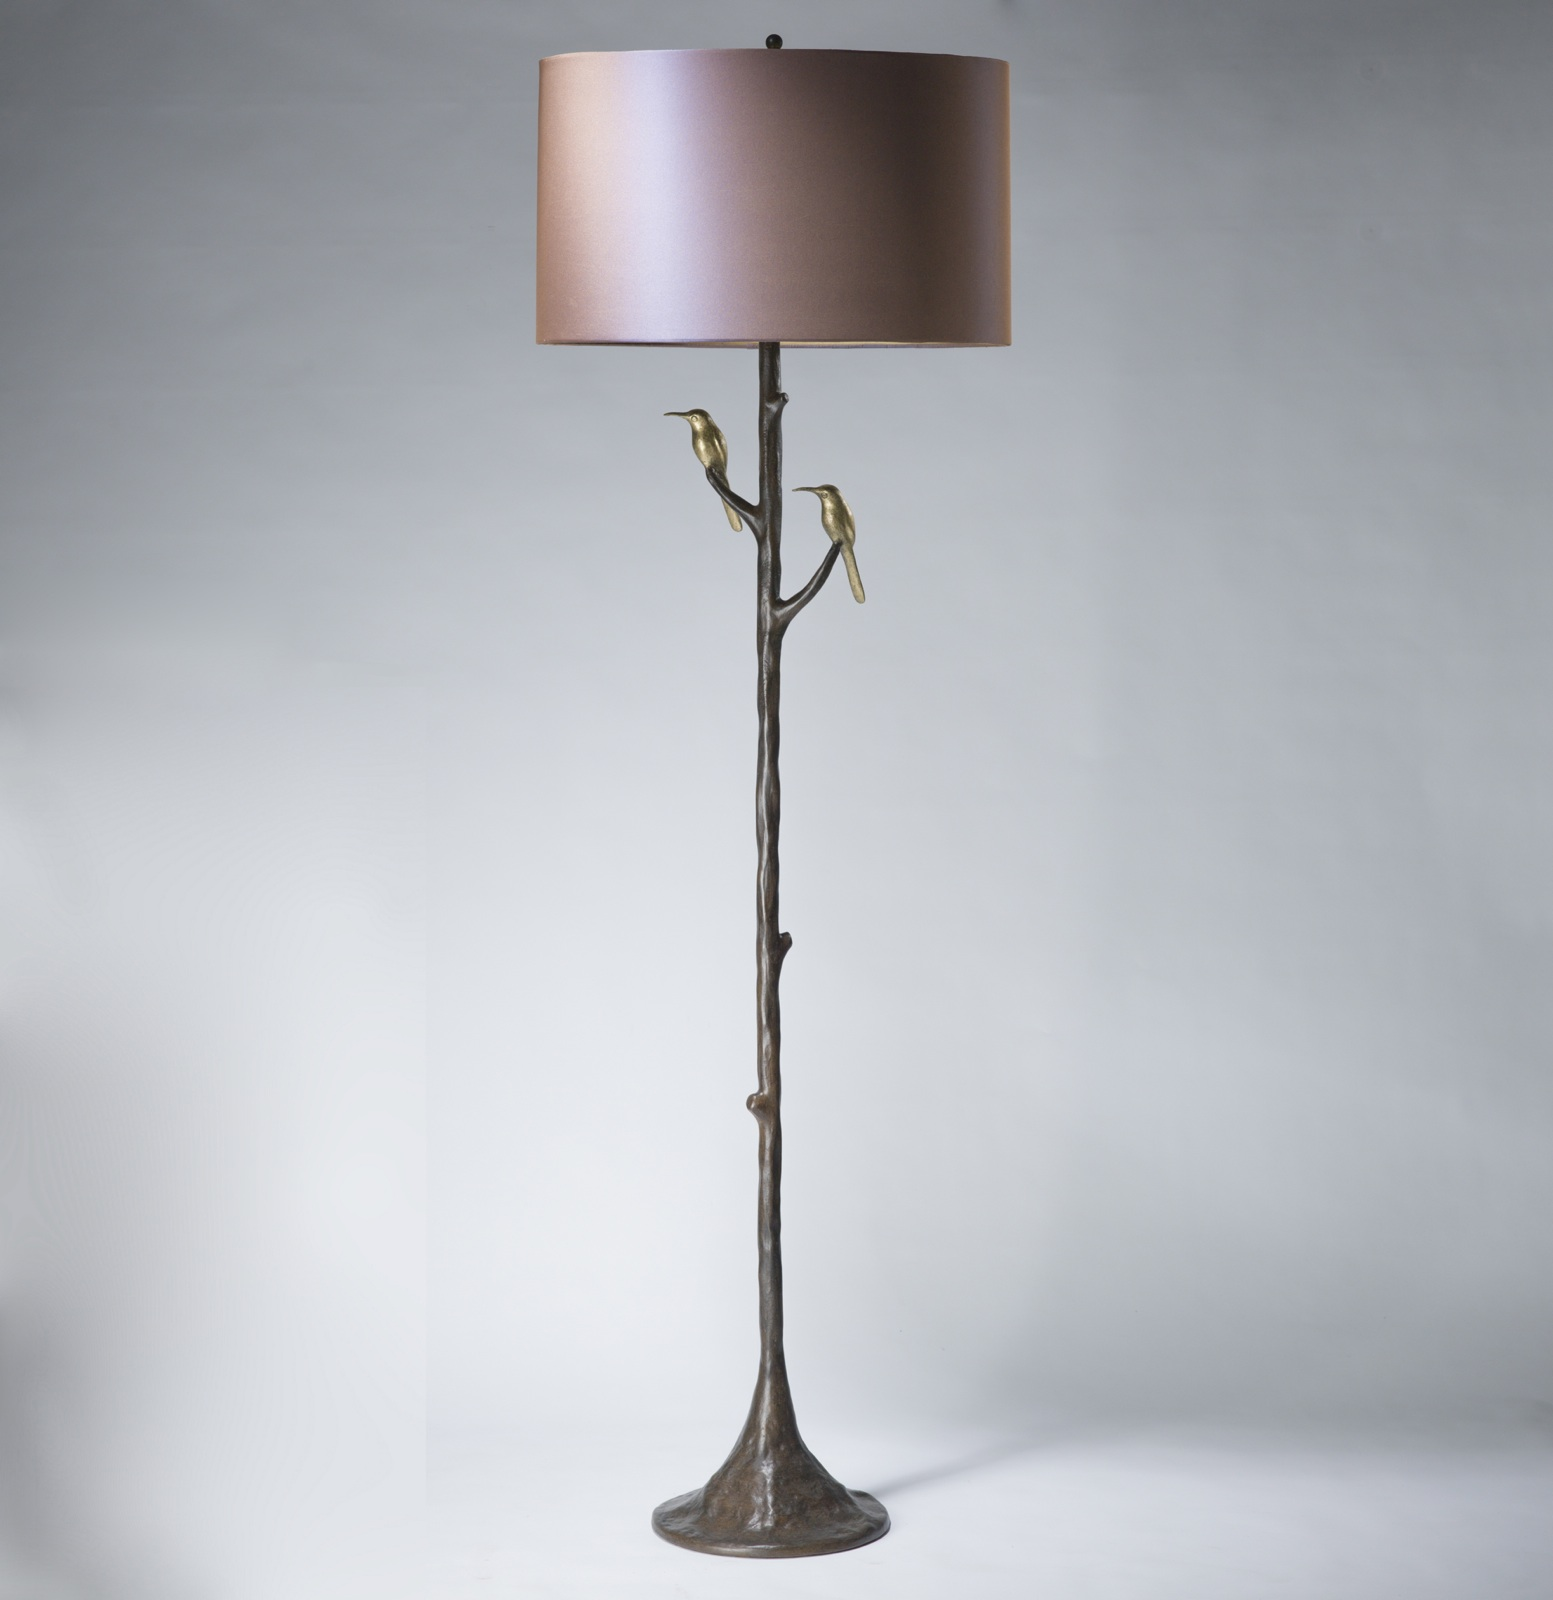 Tall Hummingbird Floor Lamp In Brown Bronze Distressed Gold Leaf Finish T3587 Tyson London Decorative Lighting And Furniture